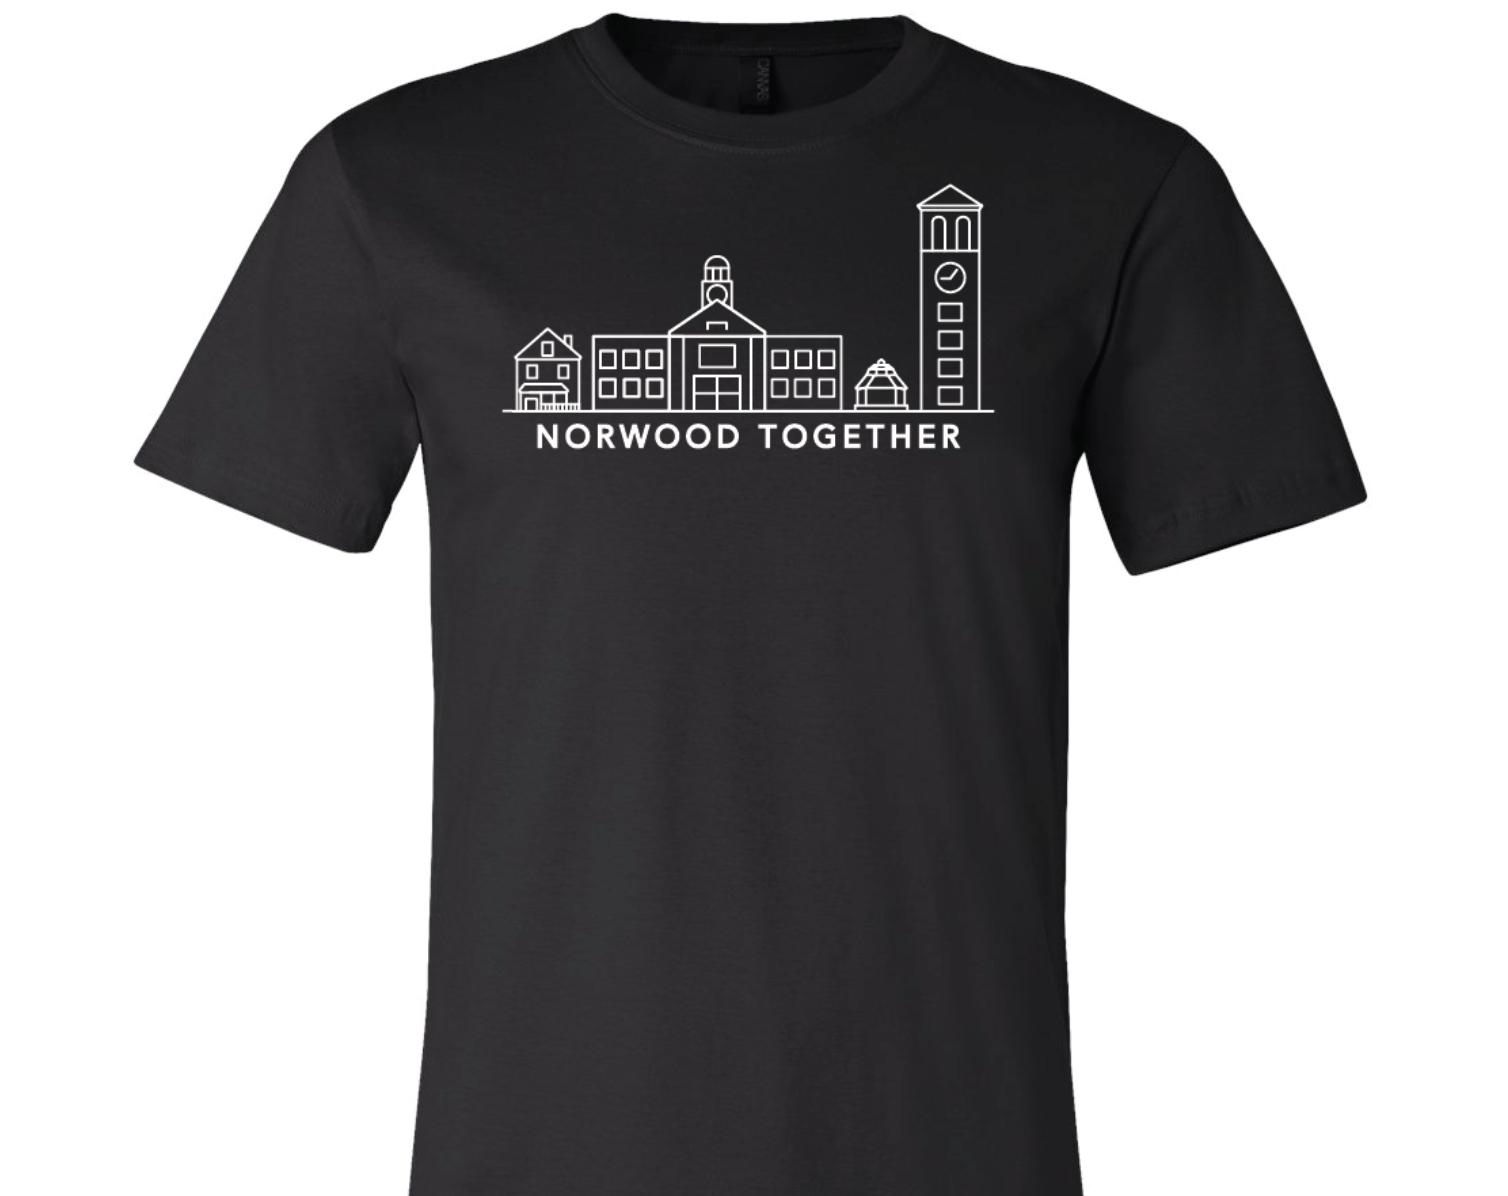 Norwood Together T-shirts available